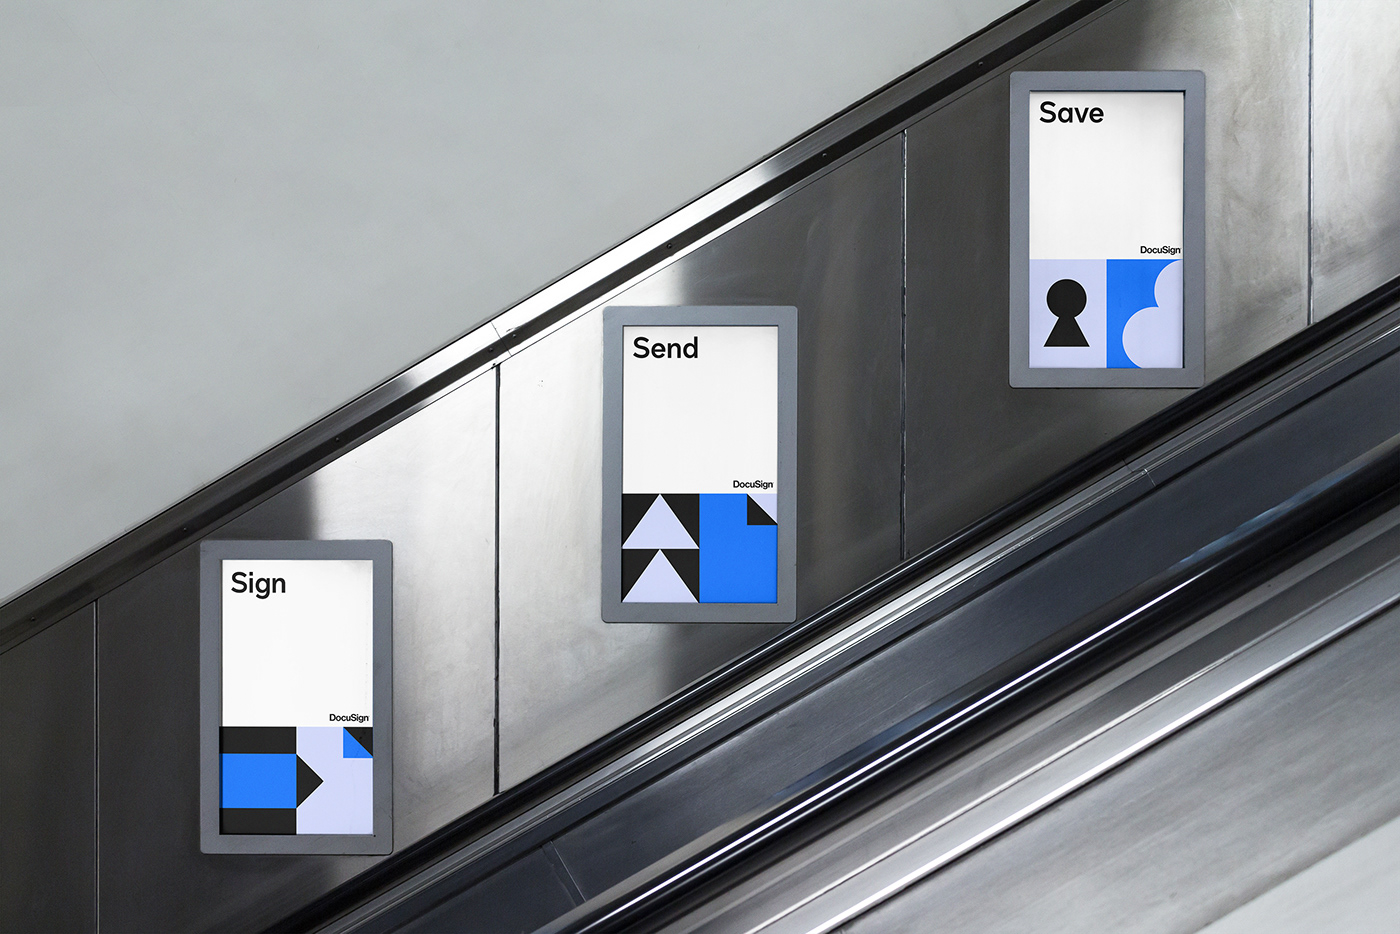 branding  DocuSign graphic grid Icon modular posters system UI ux